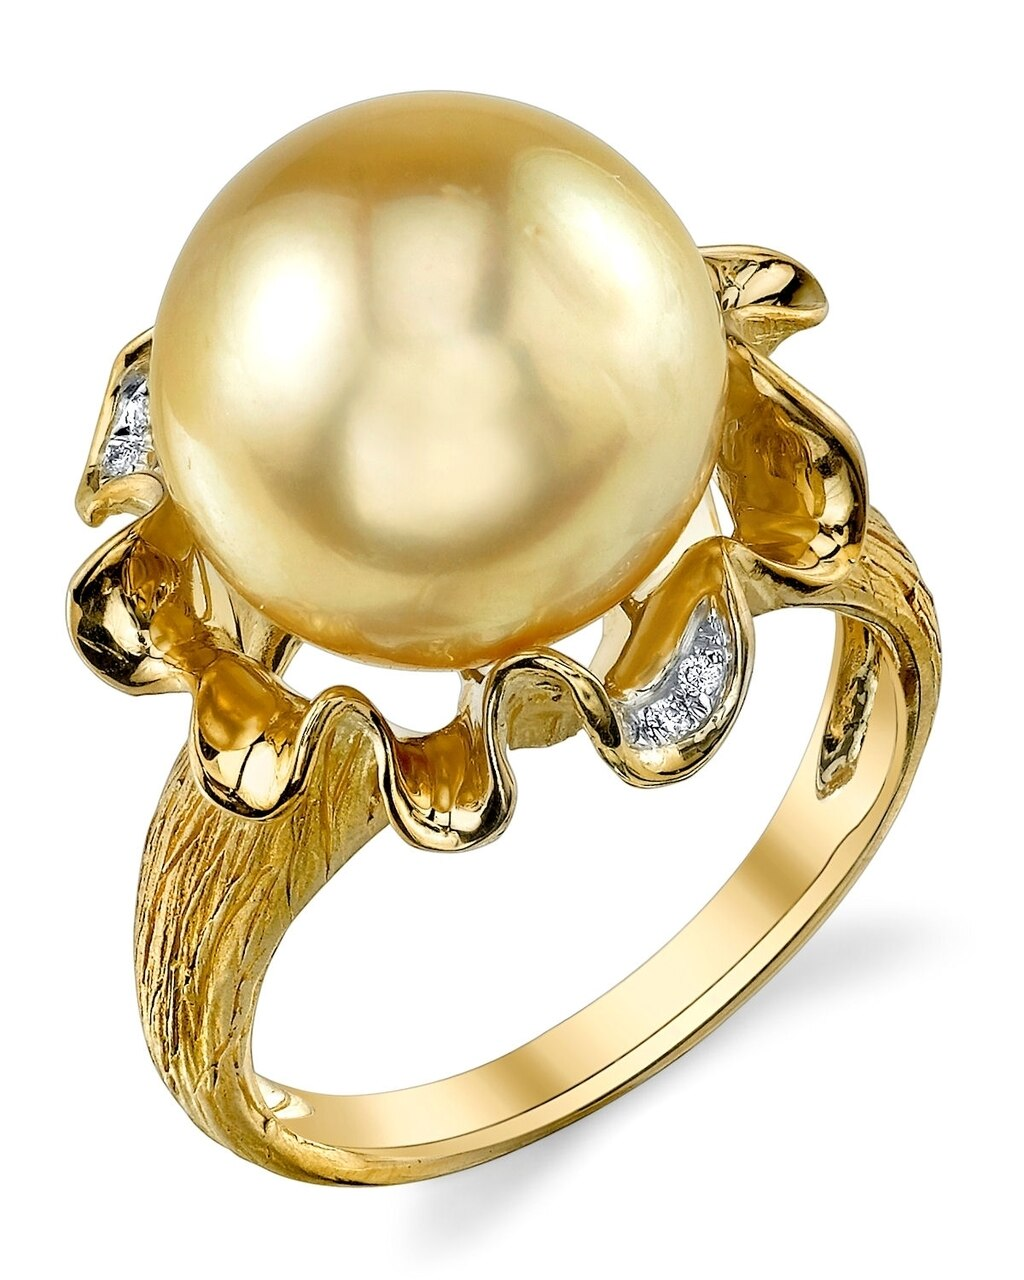 This exquisite ring features an 12.0-13.0mm Gold South Sea pearl, handpicked for its luminous luster